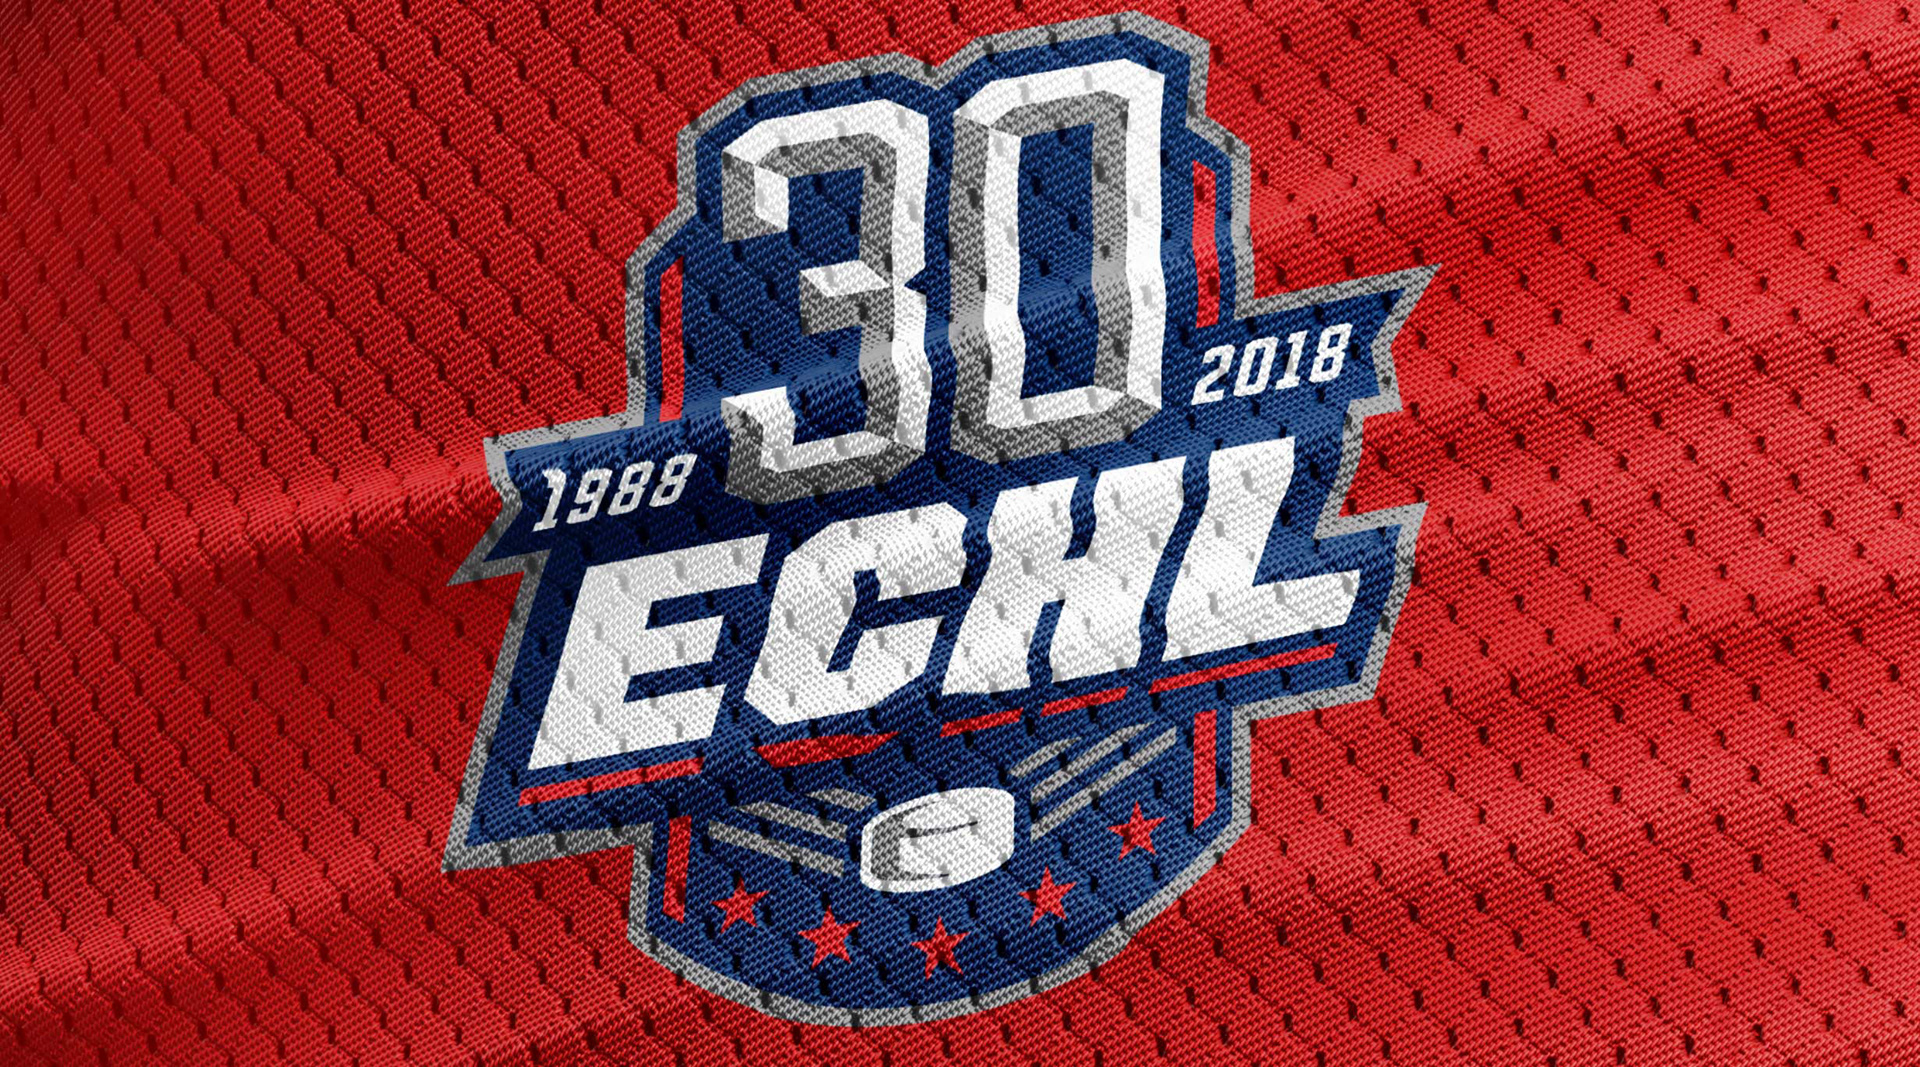 Dan royer designs echl 30th anniversary logo